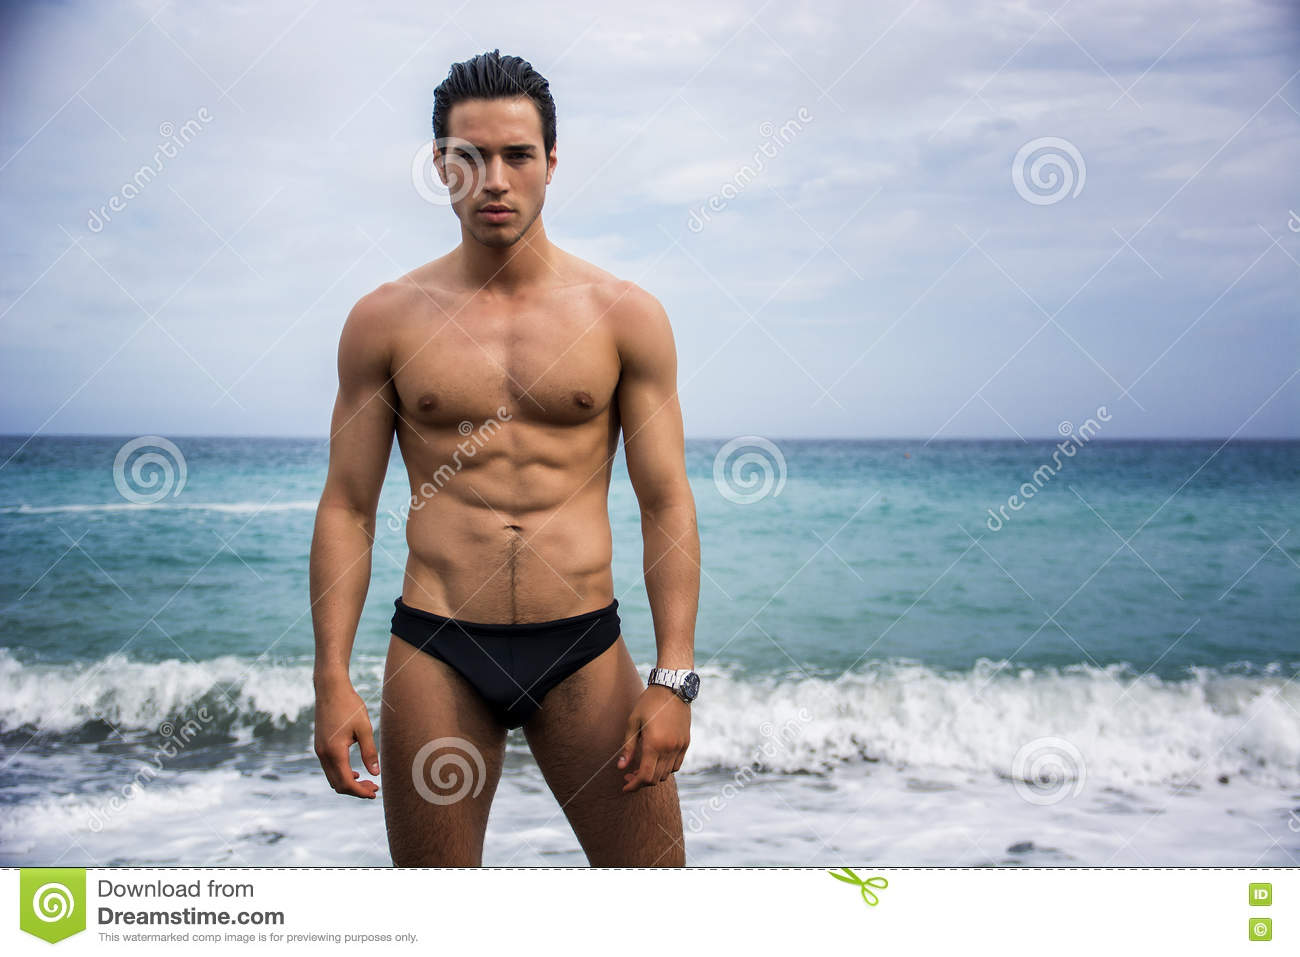 Young shirtless athletic man standing in water by ocean shore stock